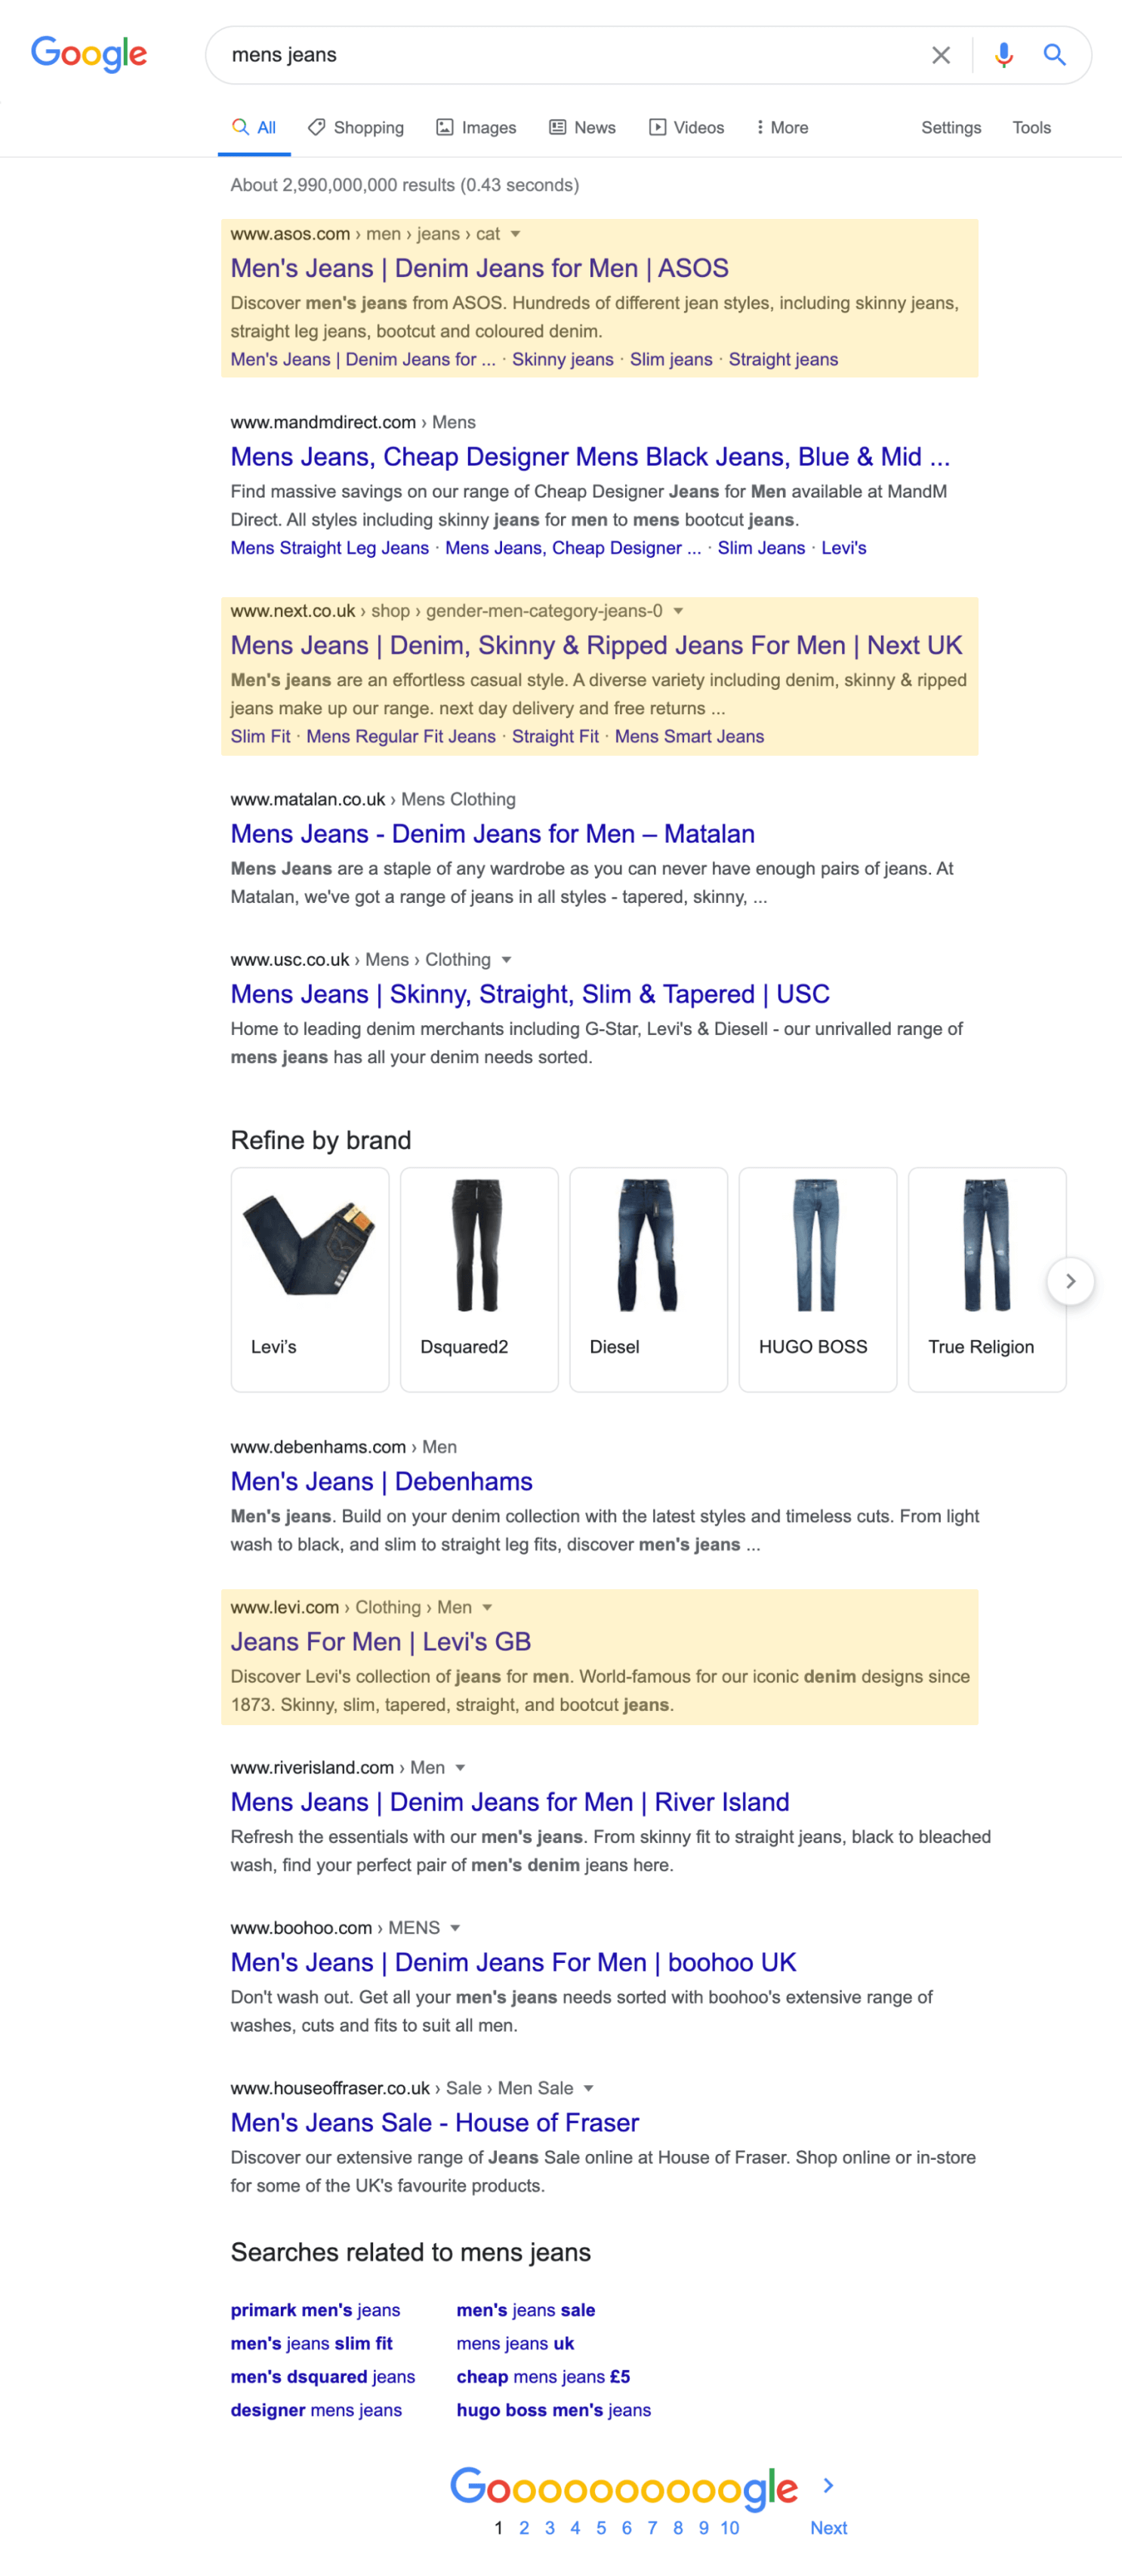 SERP screenshot for mens jeans with results highlighted.